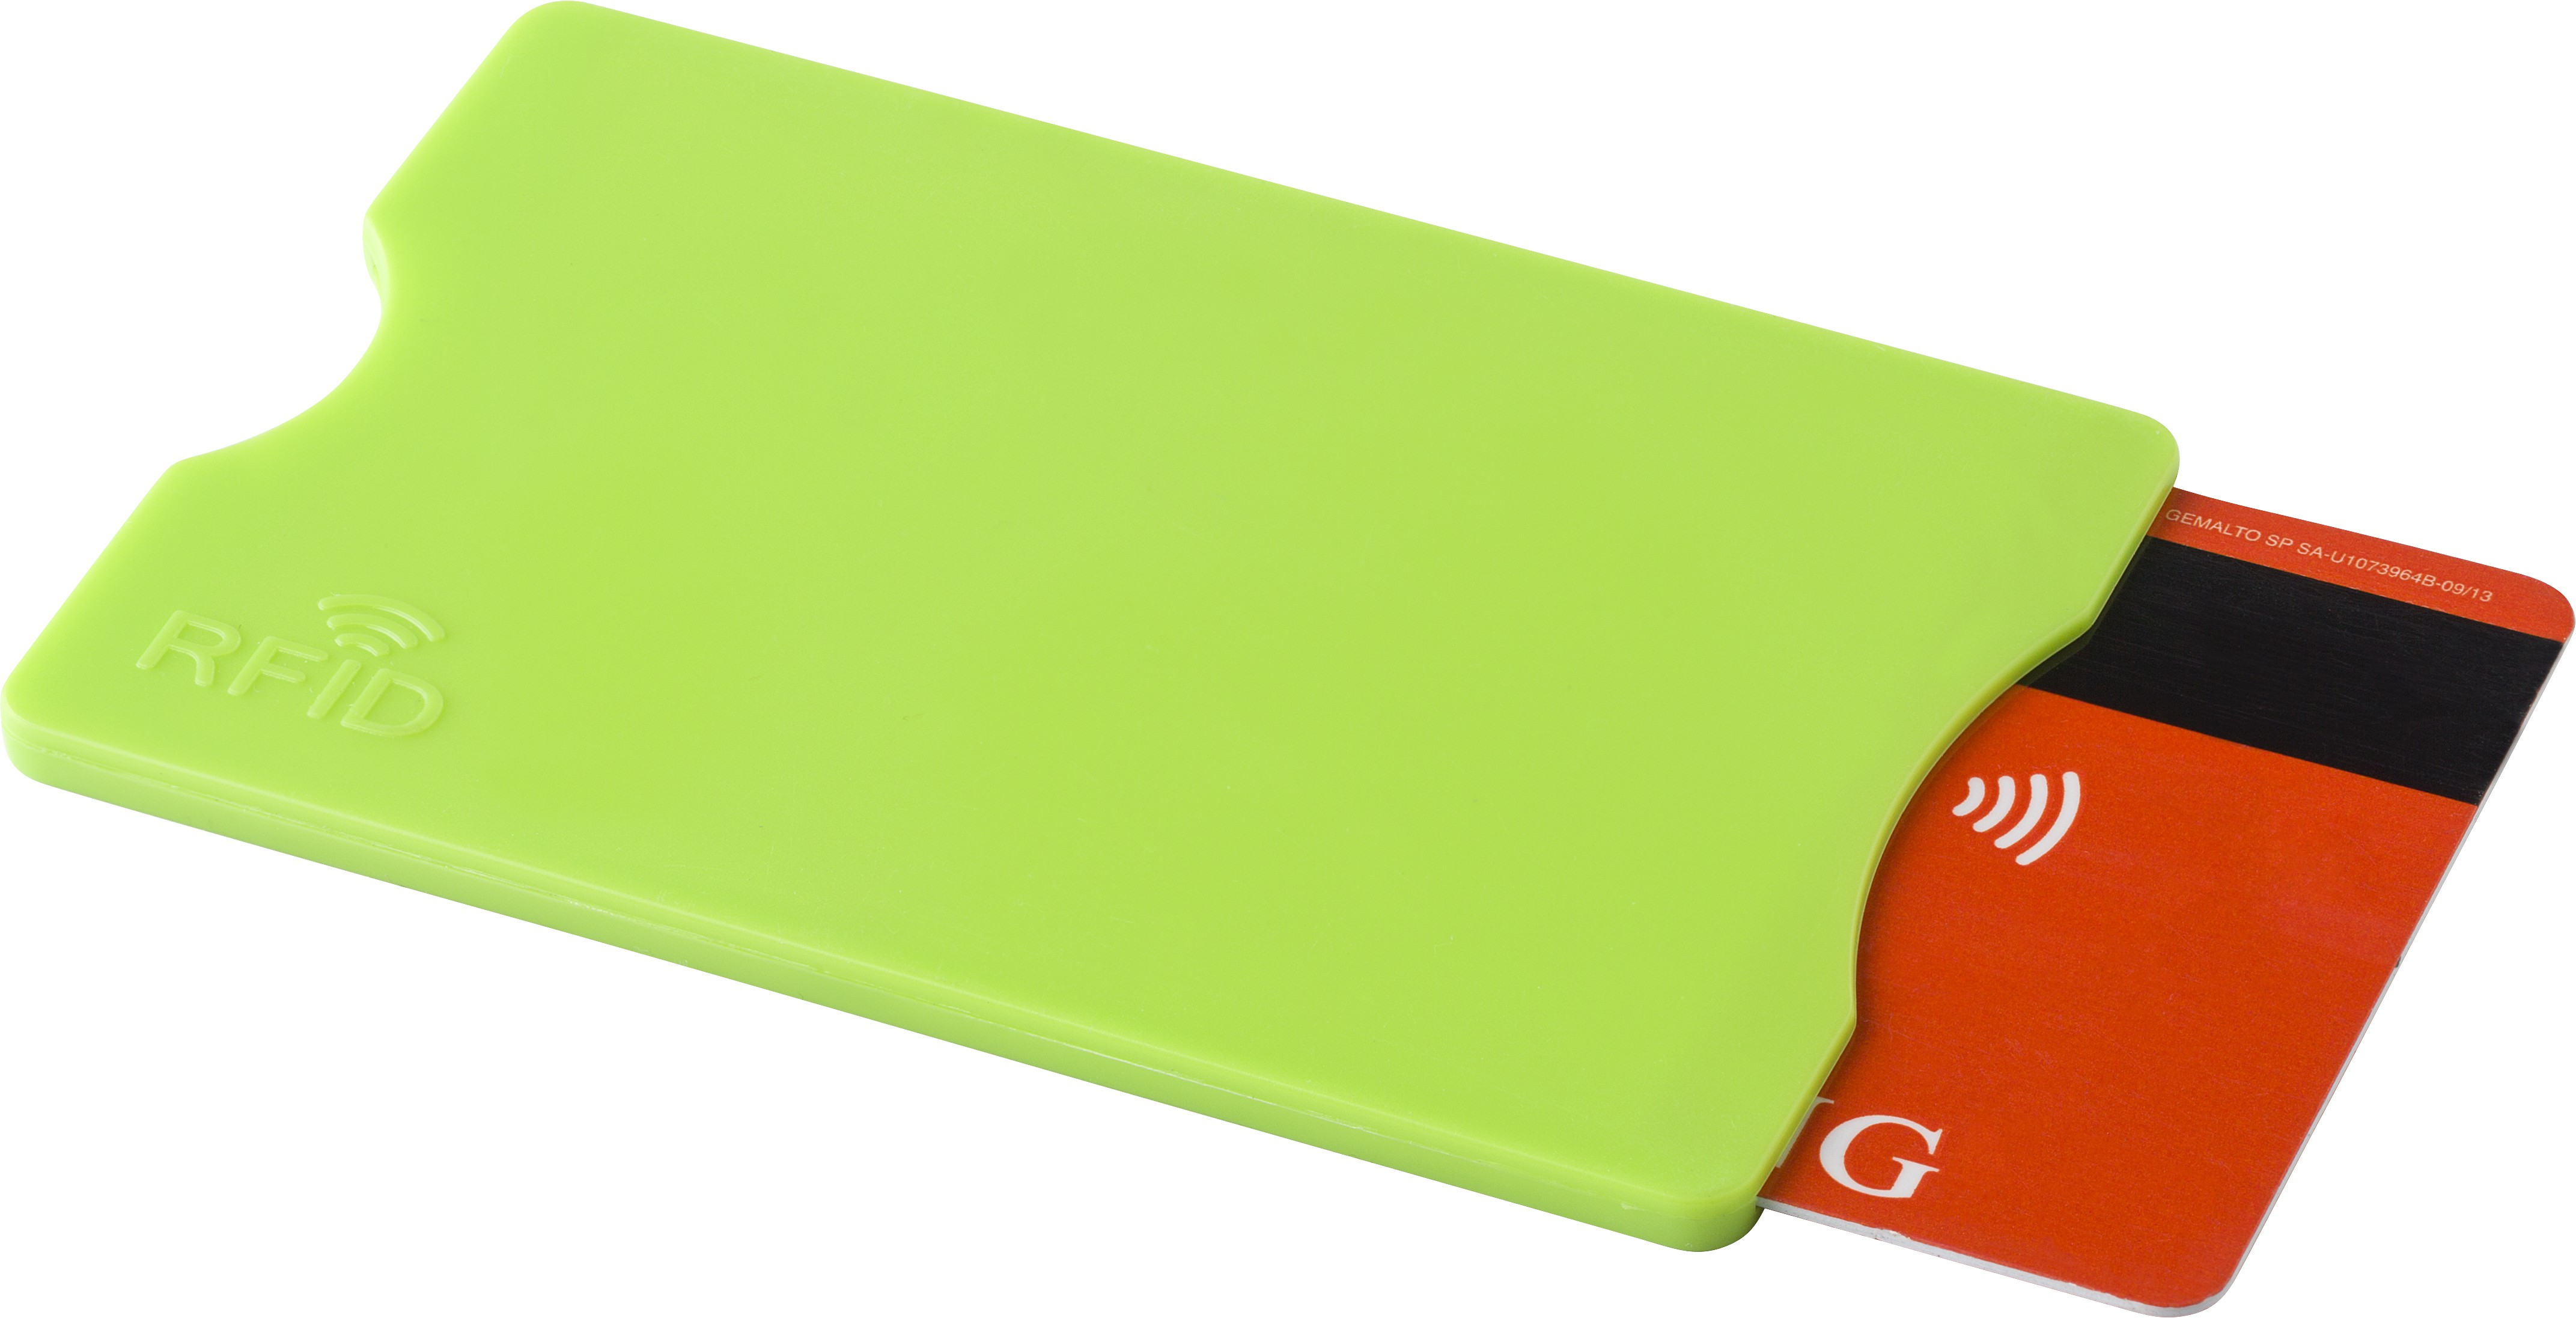 plastic card holder with rfid protection light green imitation leather textile plastic - Plastic Card Holder